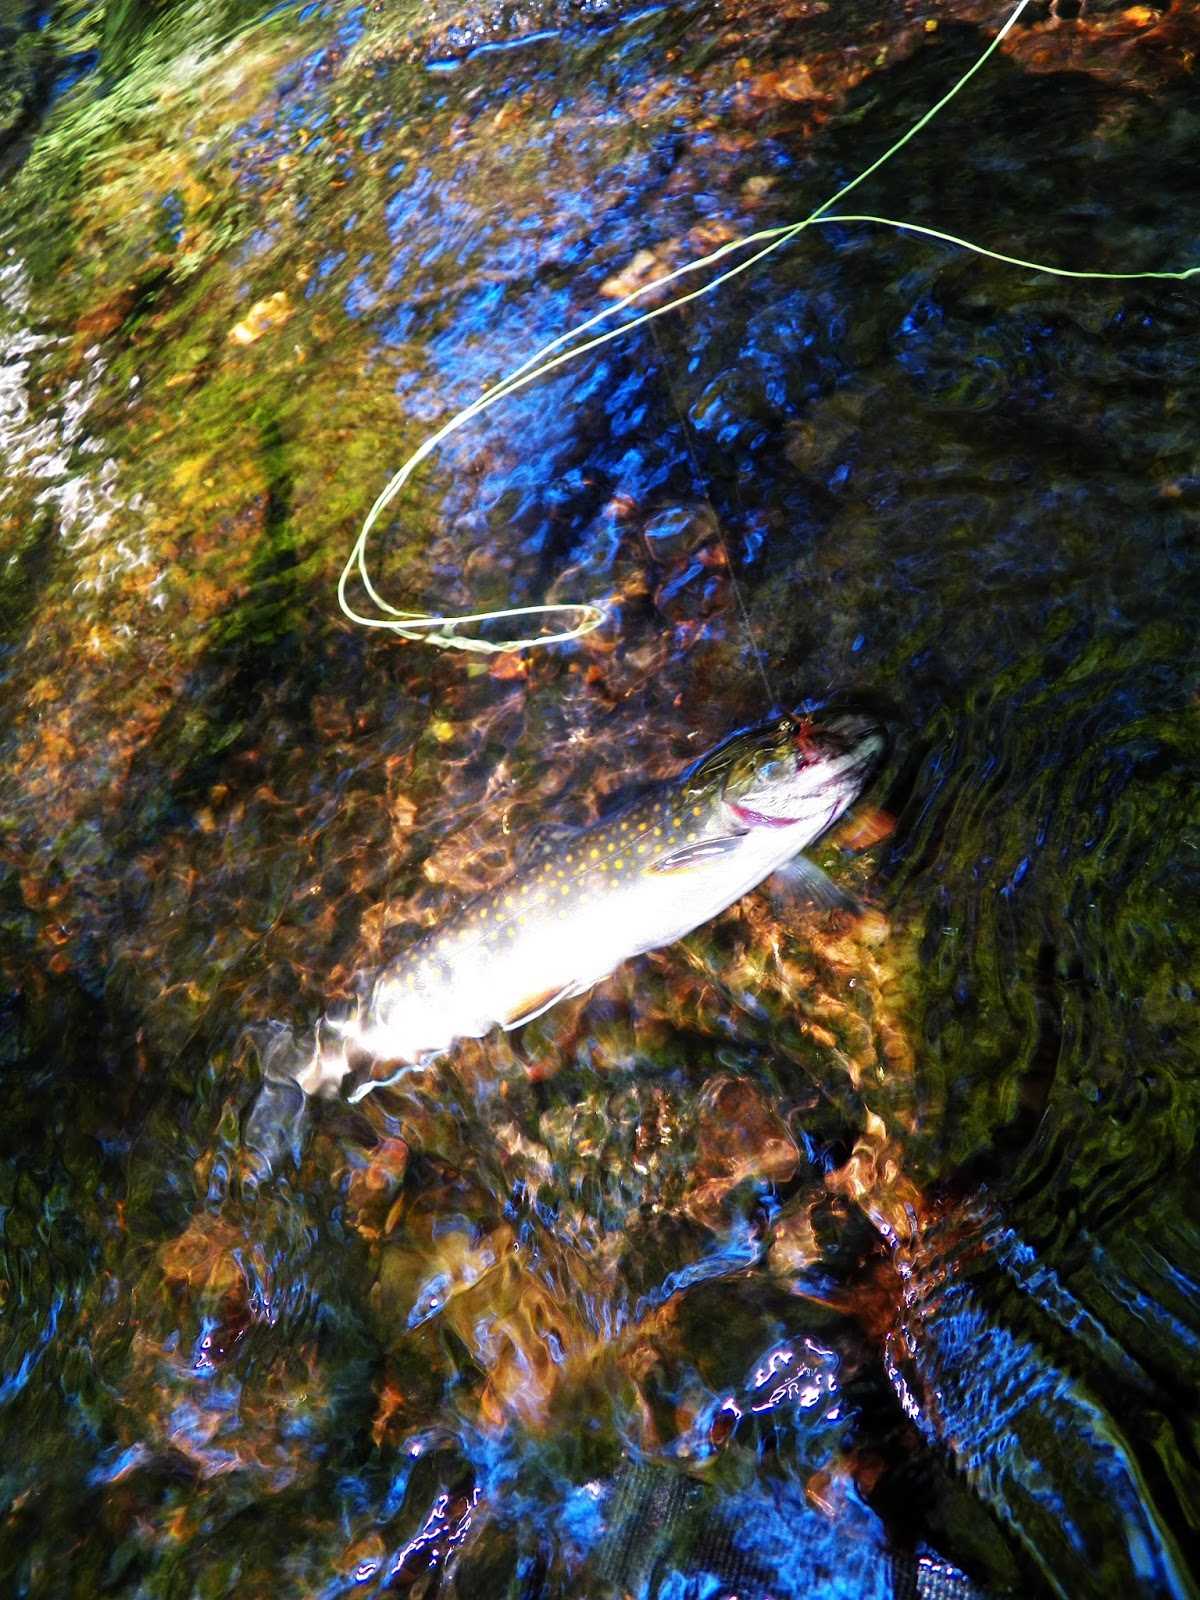 connecticut fly angler my biggest wild brook trout so far